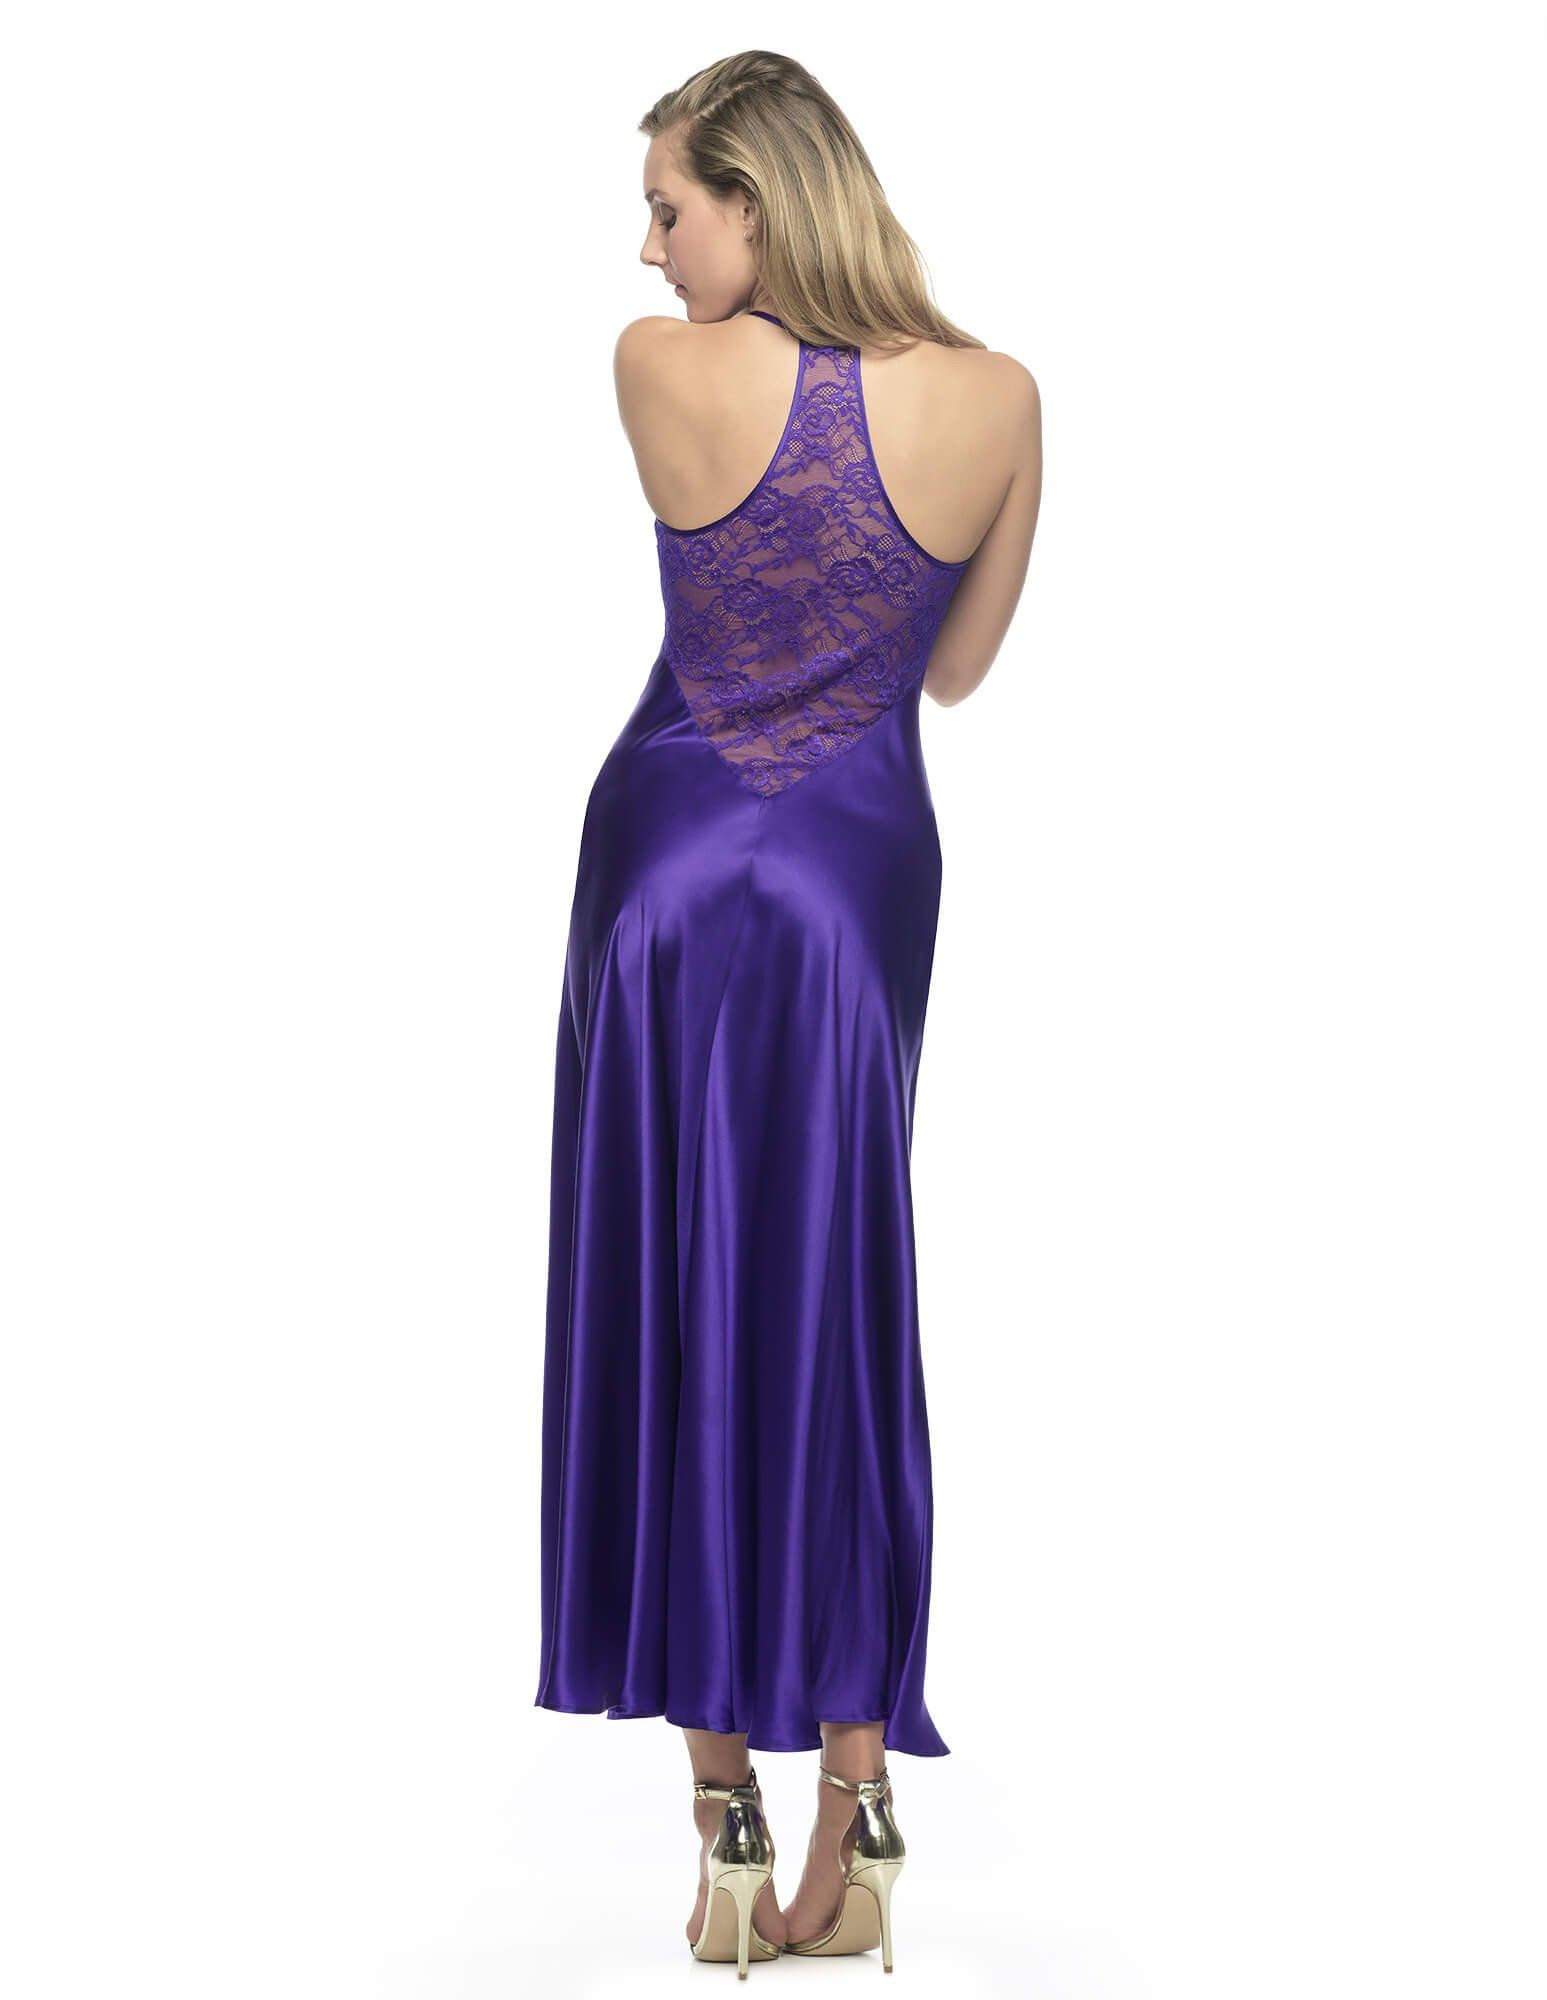 Gypsy Diva Long Gown in Ultra Violet